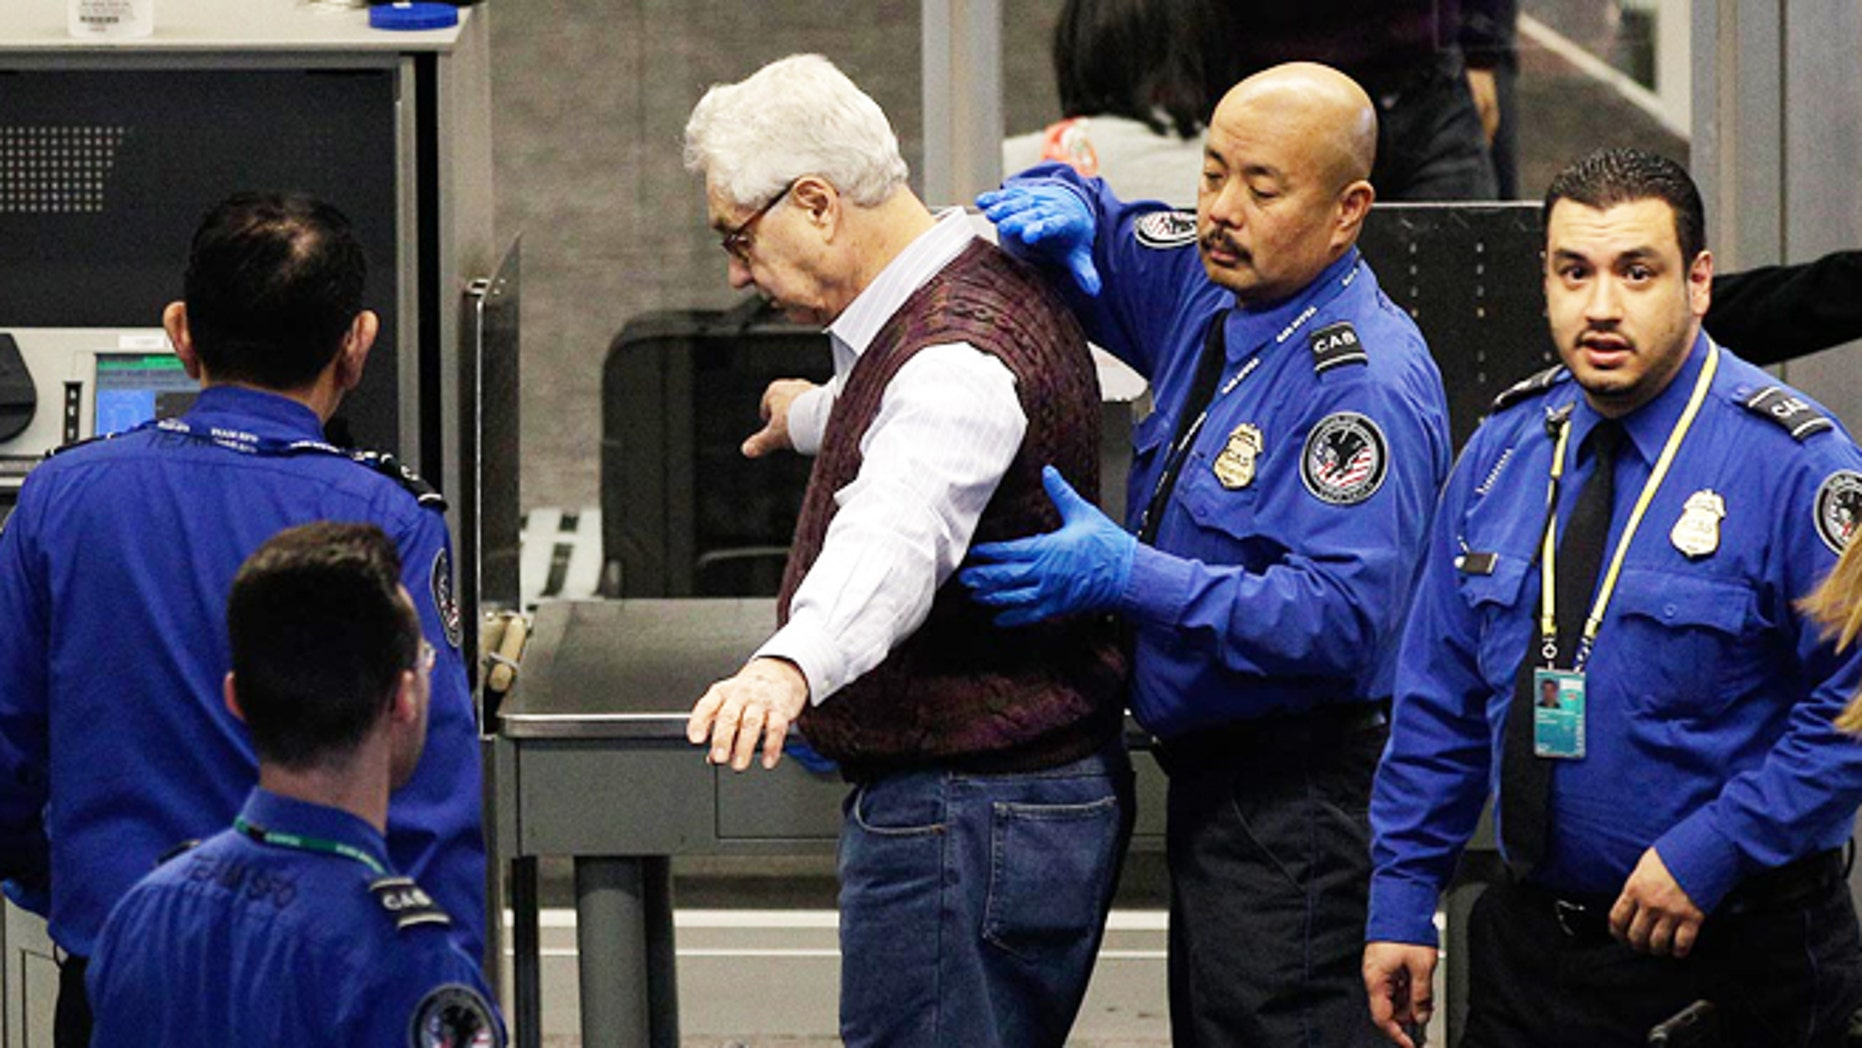 The TSA has been blasted by numerous Yelp reviewers.